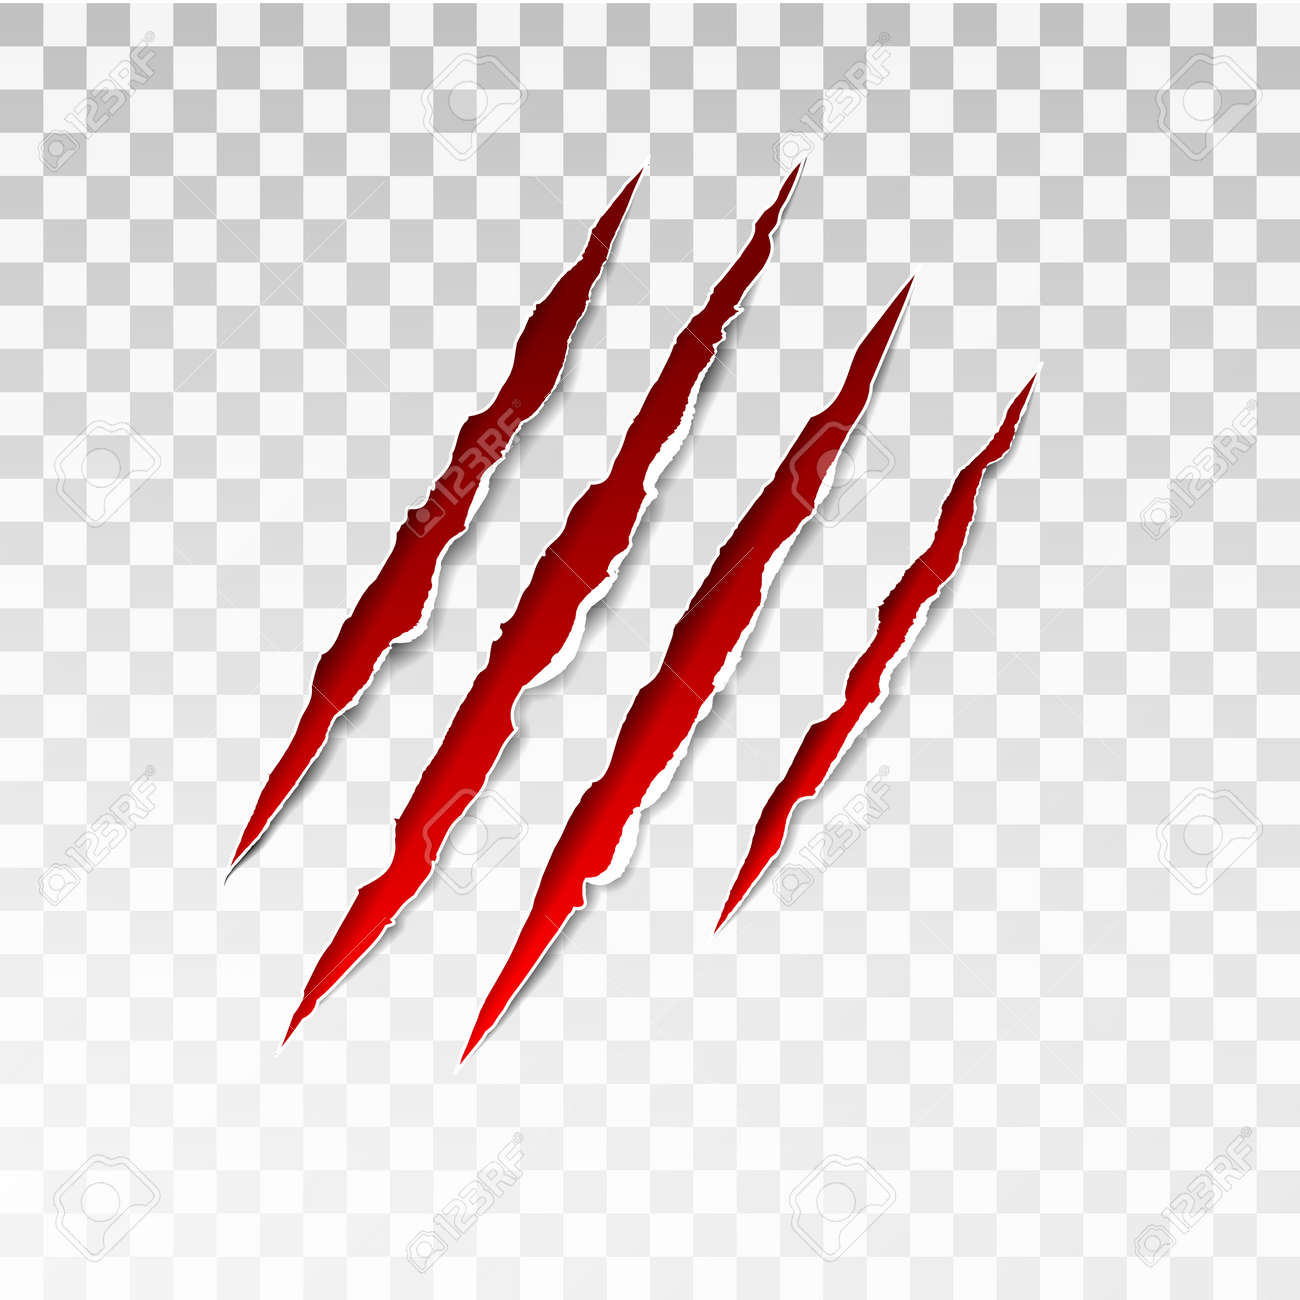 Animal red scratches on transparent background. Paper claws animal scratching. Claw scratch mark. Animal predator paw claw, knife scratch trace. Horror slash trace. vector illustration. - 158934625